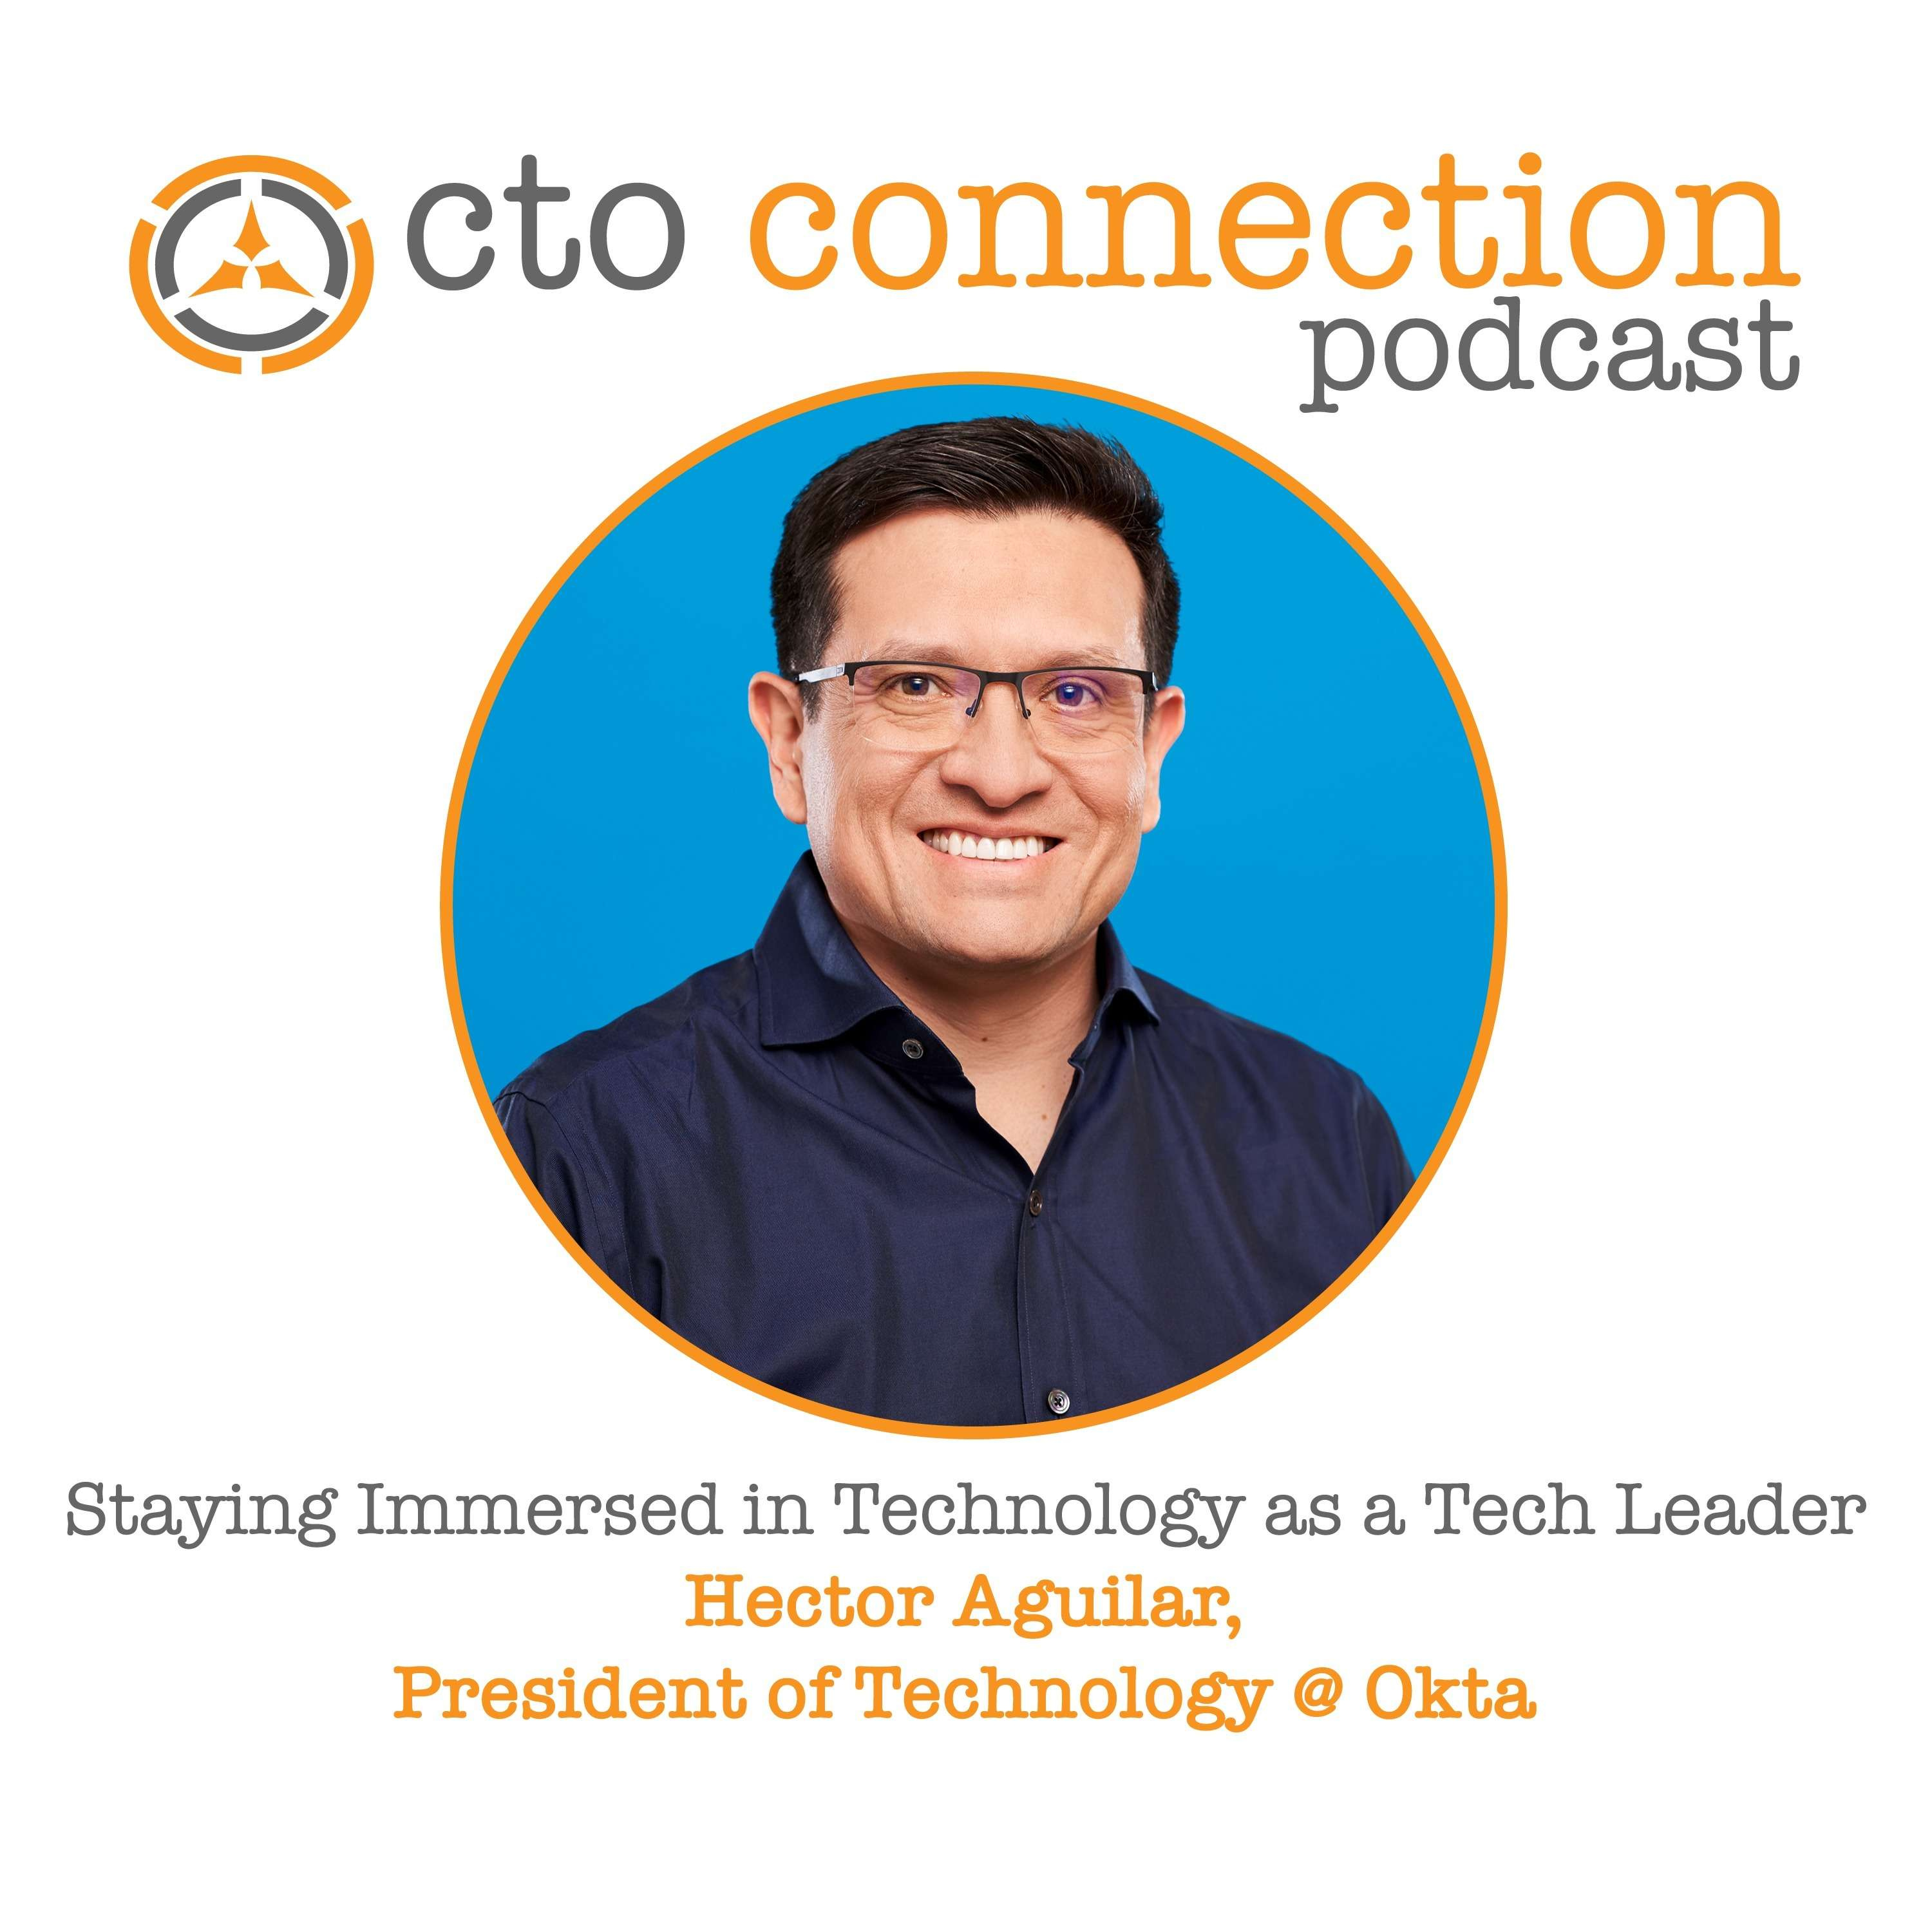 Staying Immersed in Technology as a Tech Leader with Hector Aguilar